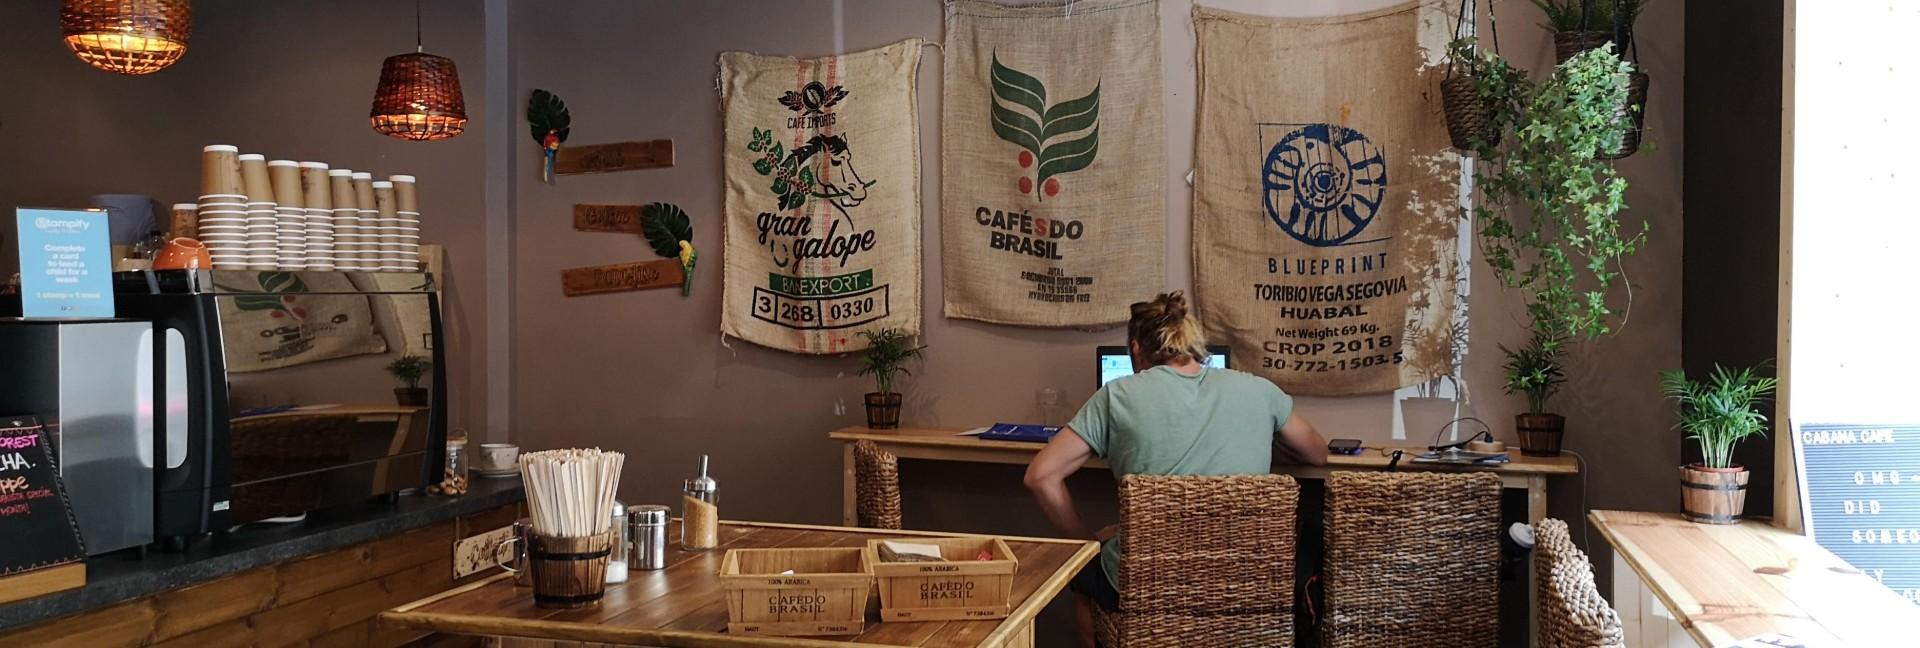 cafes page header 1